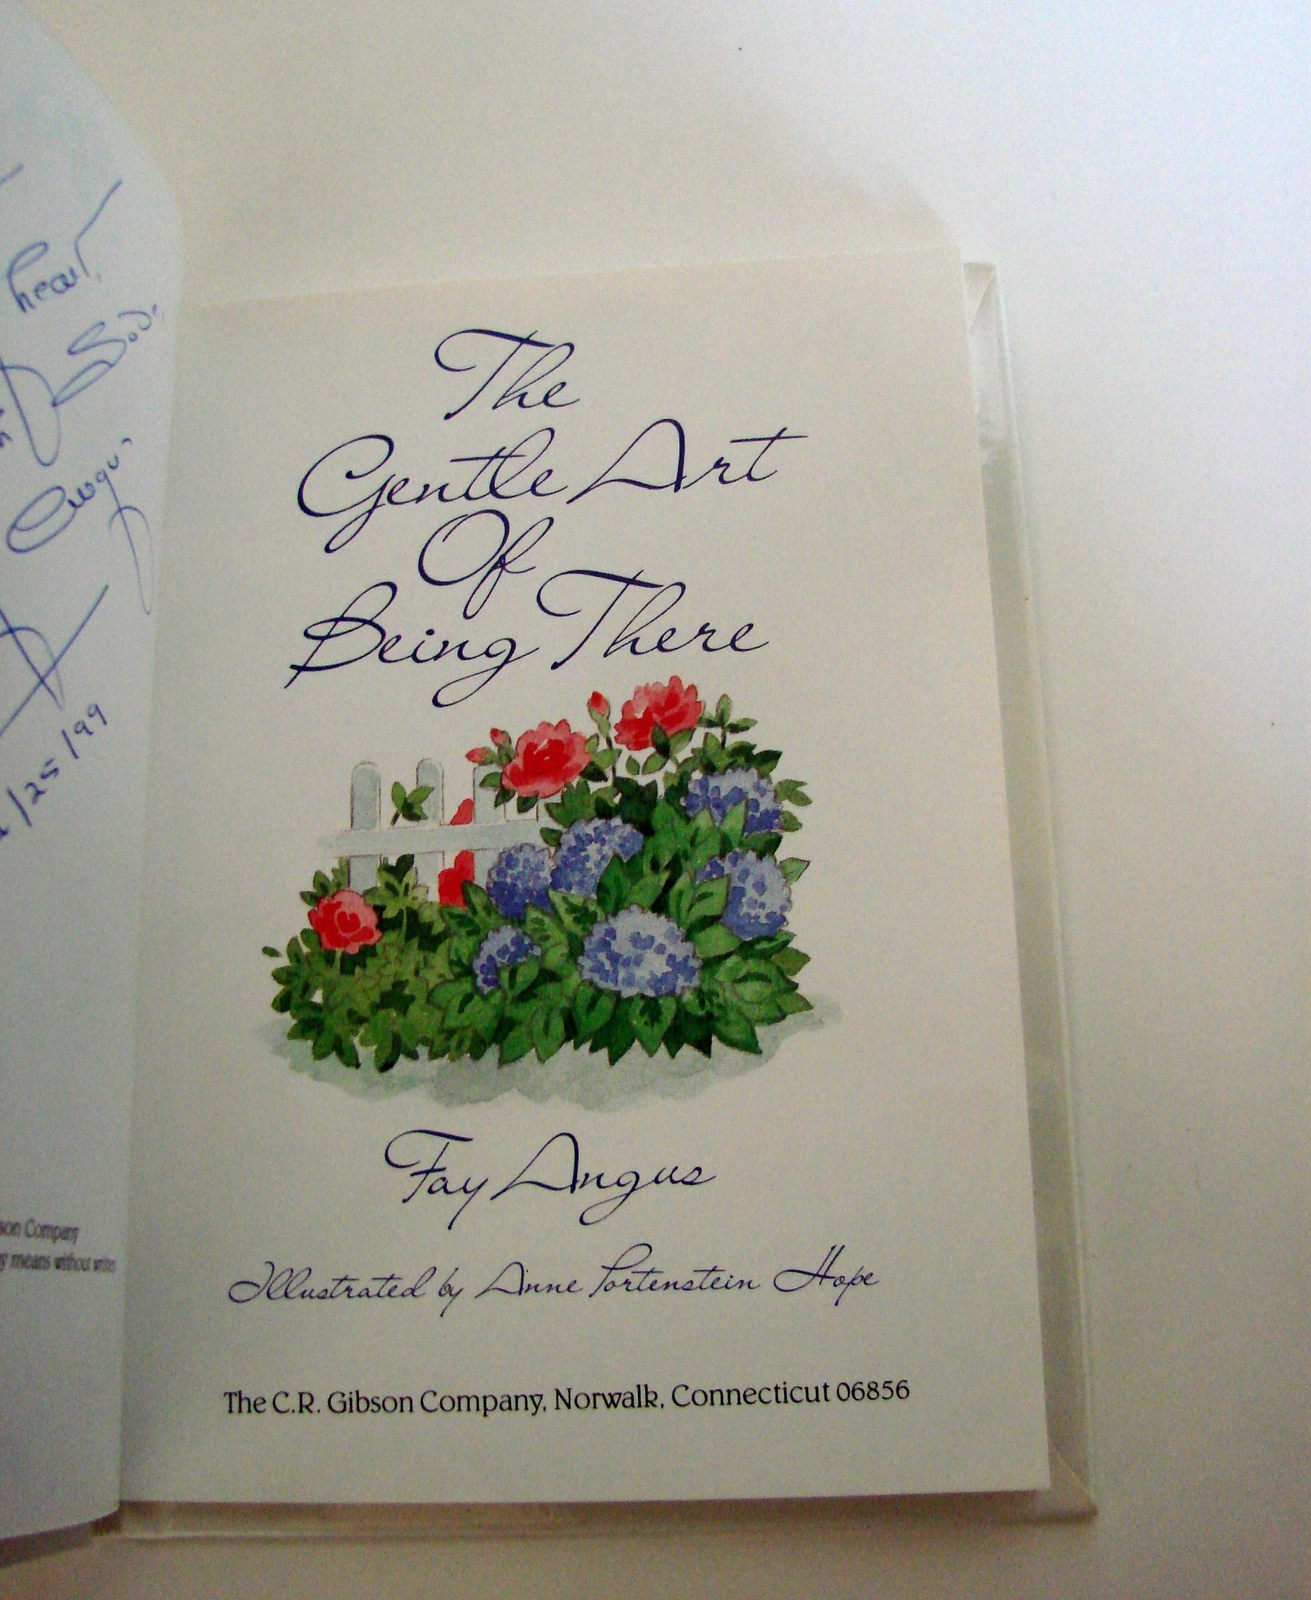 The Gentle Art of Being There (Hardcover) by Fay Angus (Author) Signed